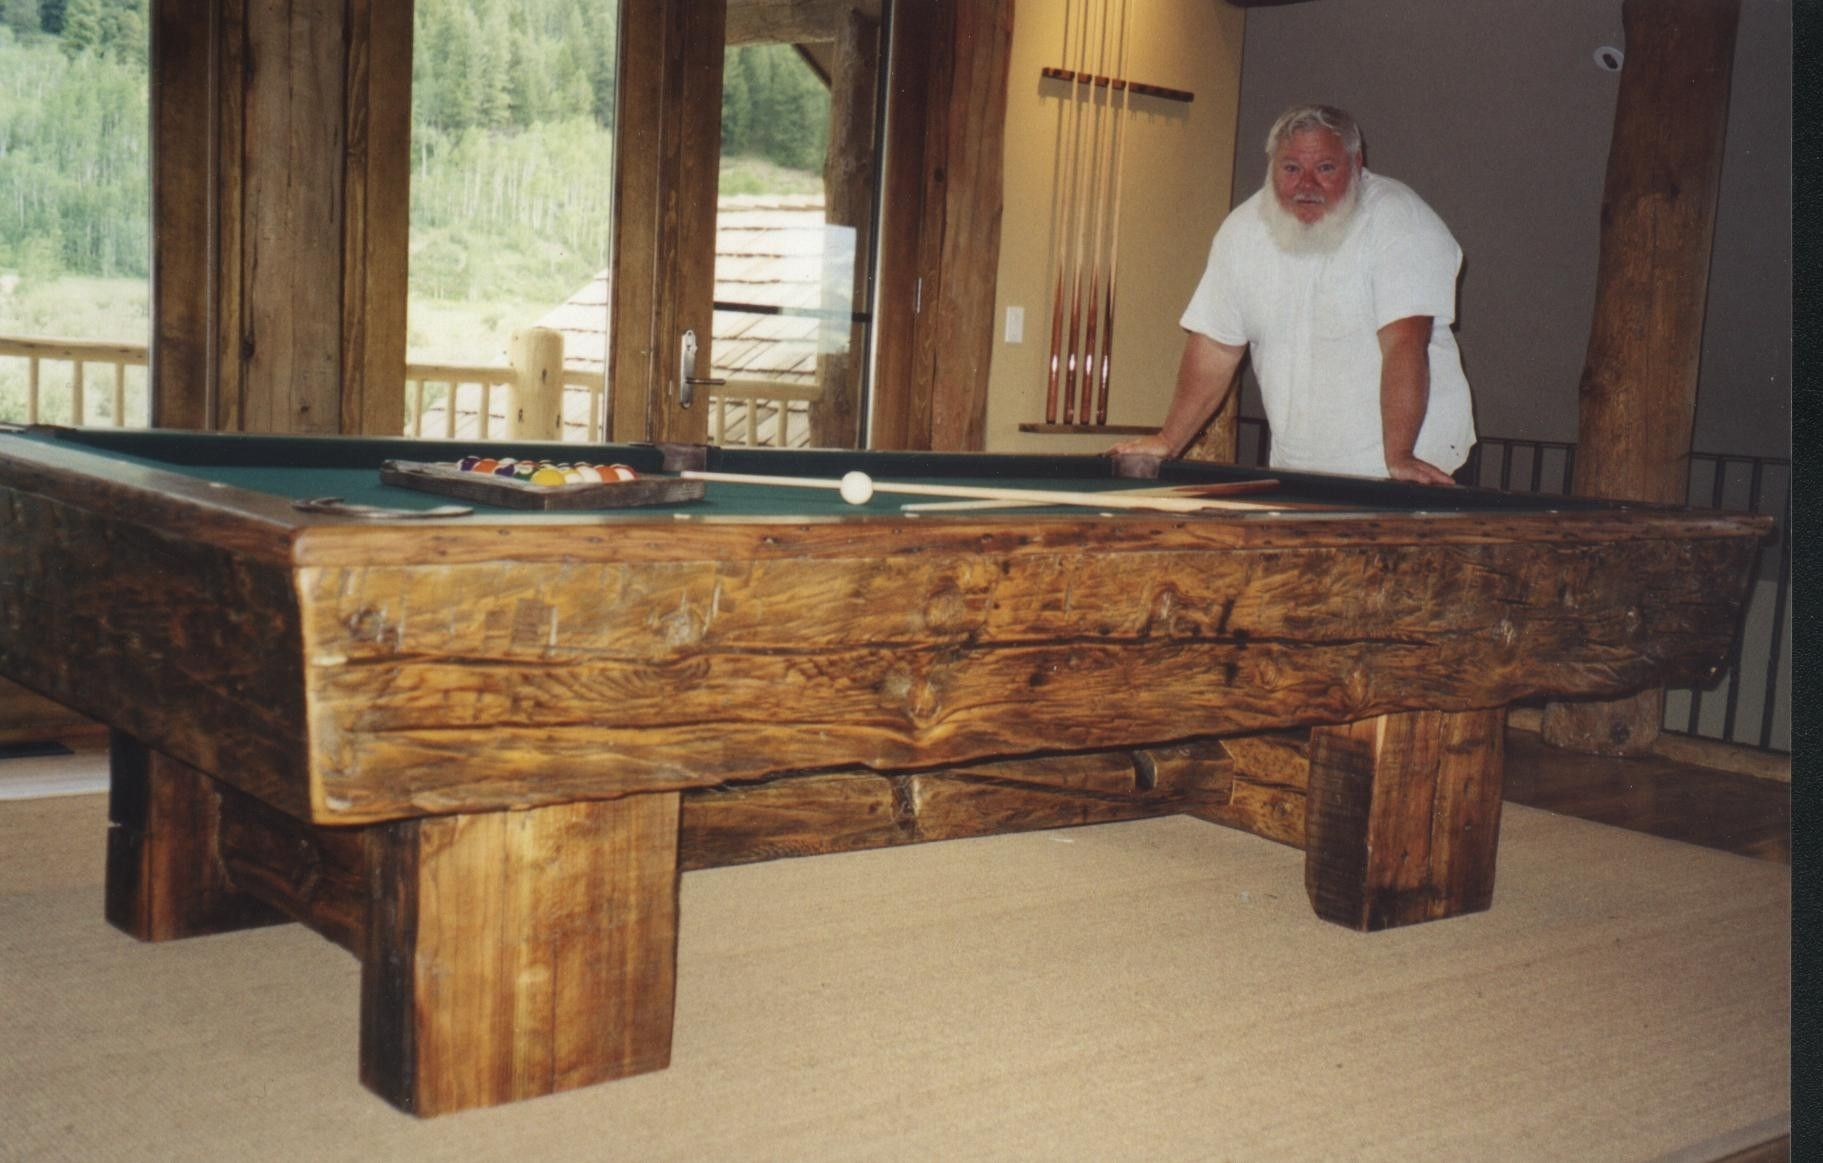 Stupendous Custom Timber Billiard Tables By Roaring Fork Custom Beutiful Home Inspiration Xortanetmahrainfo